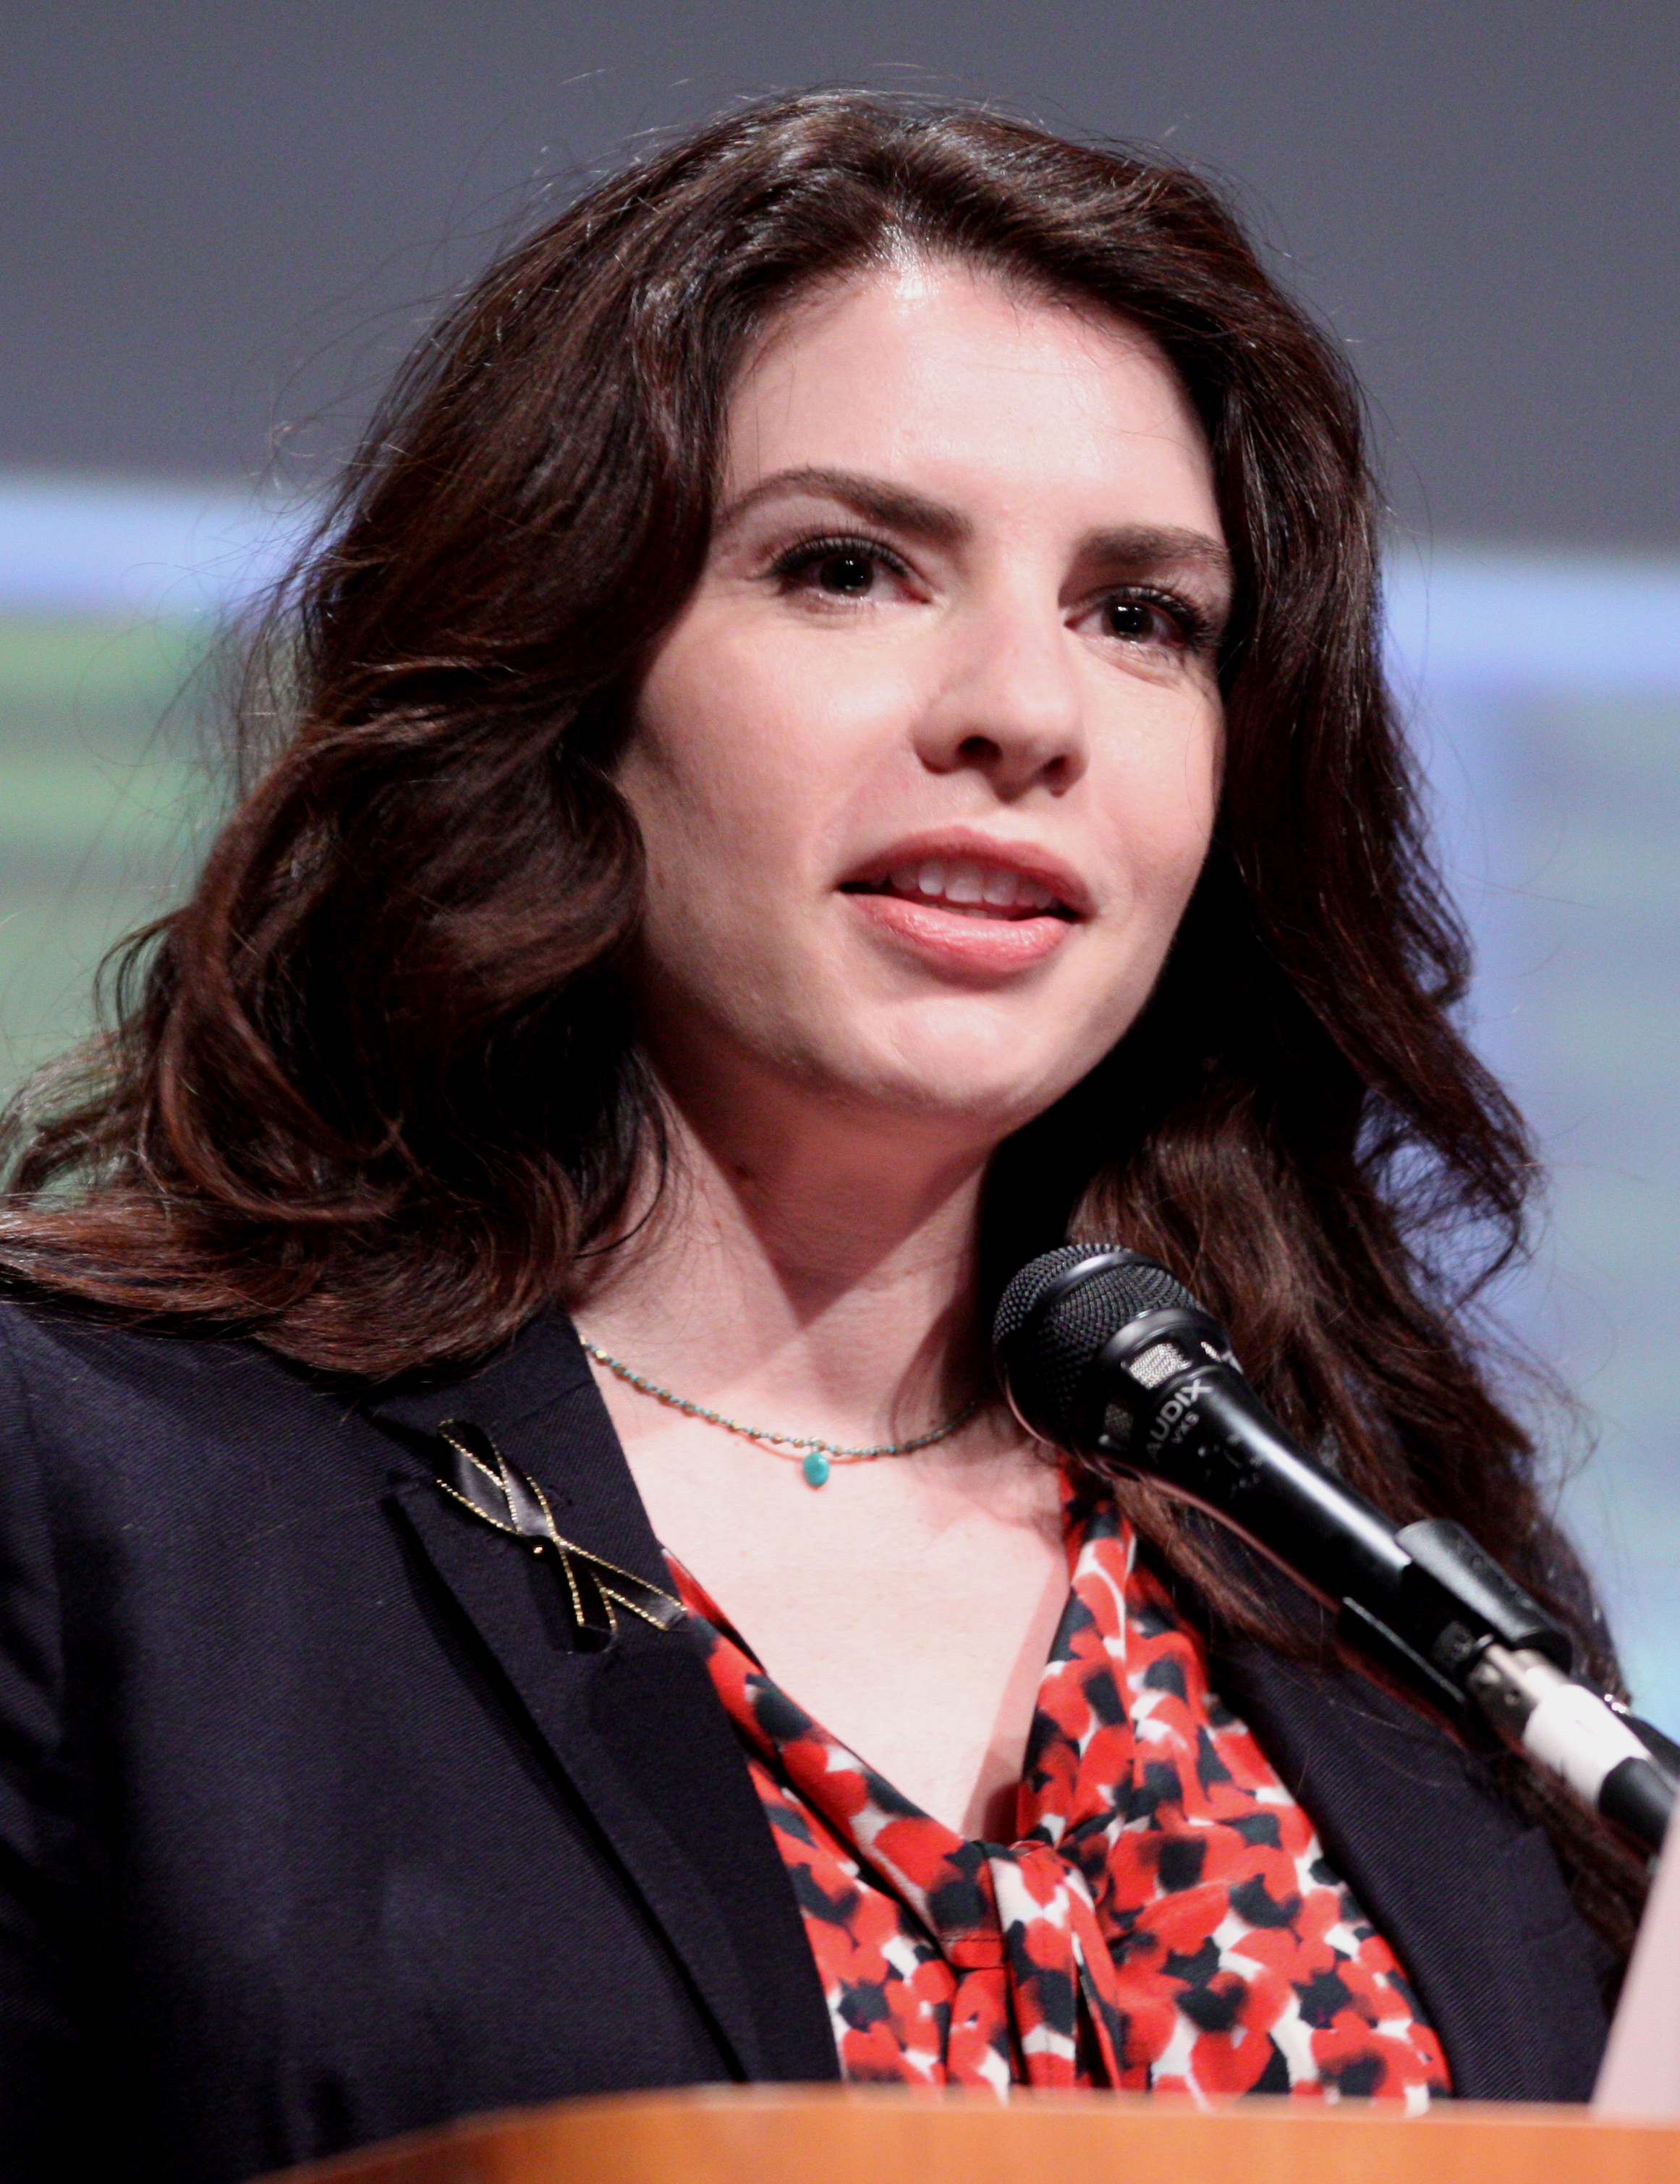 Stephenie Meyer - Wikipedia